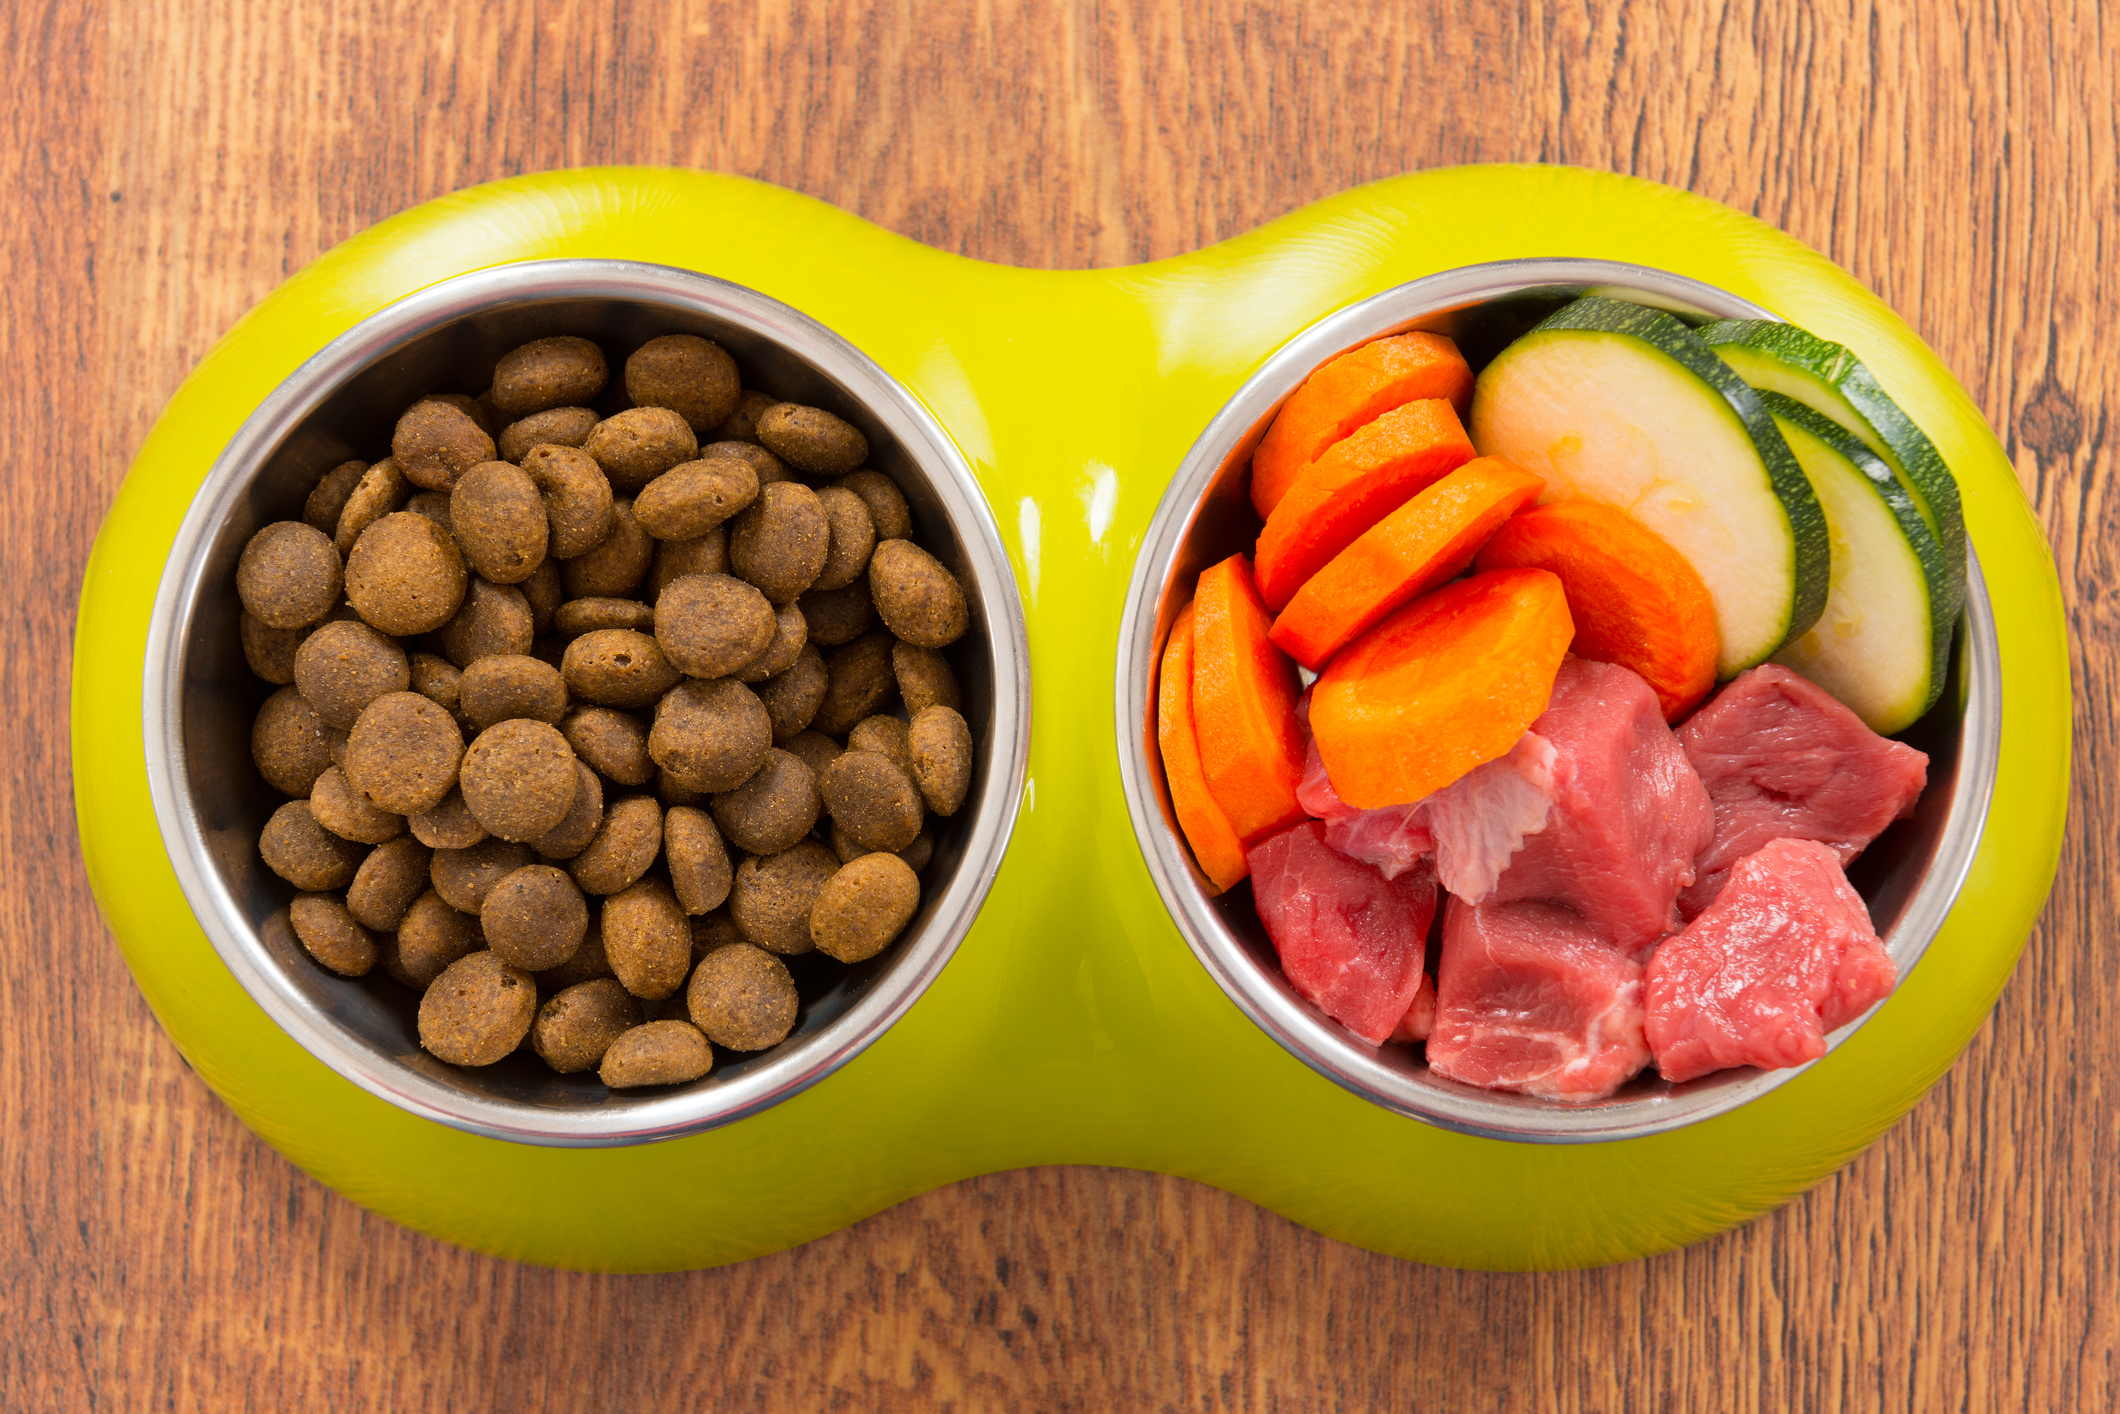 Natural and dry dog's food